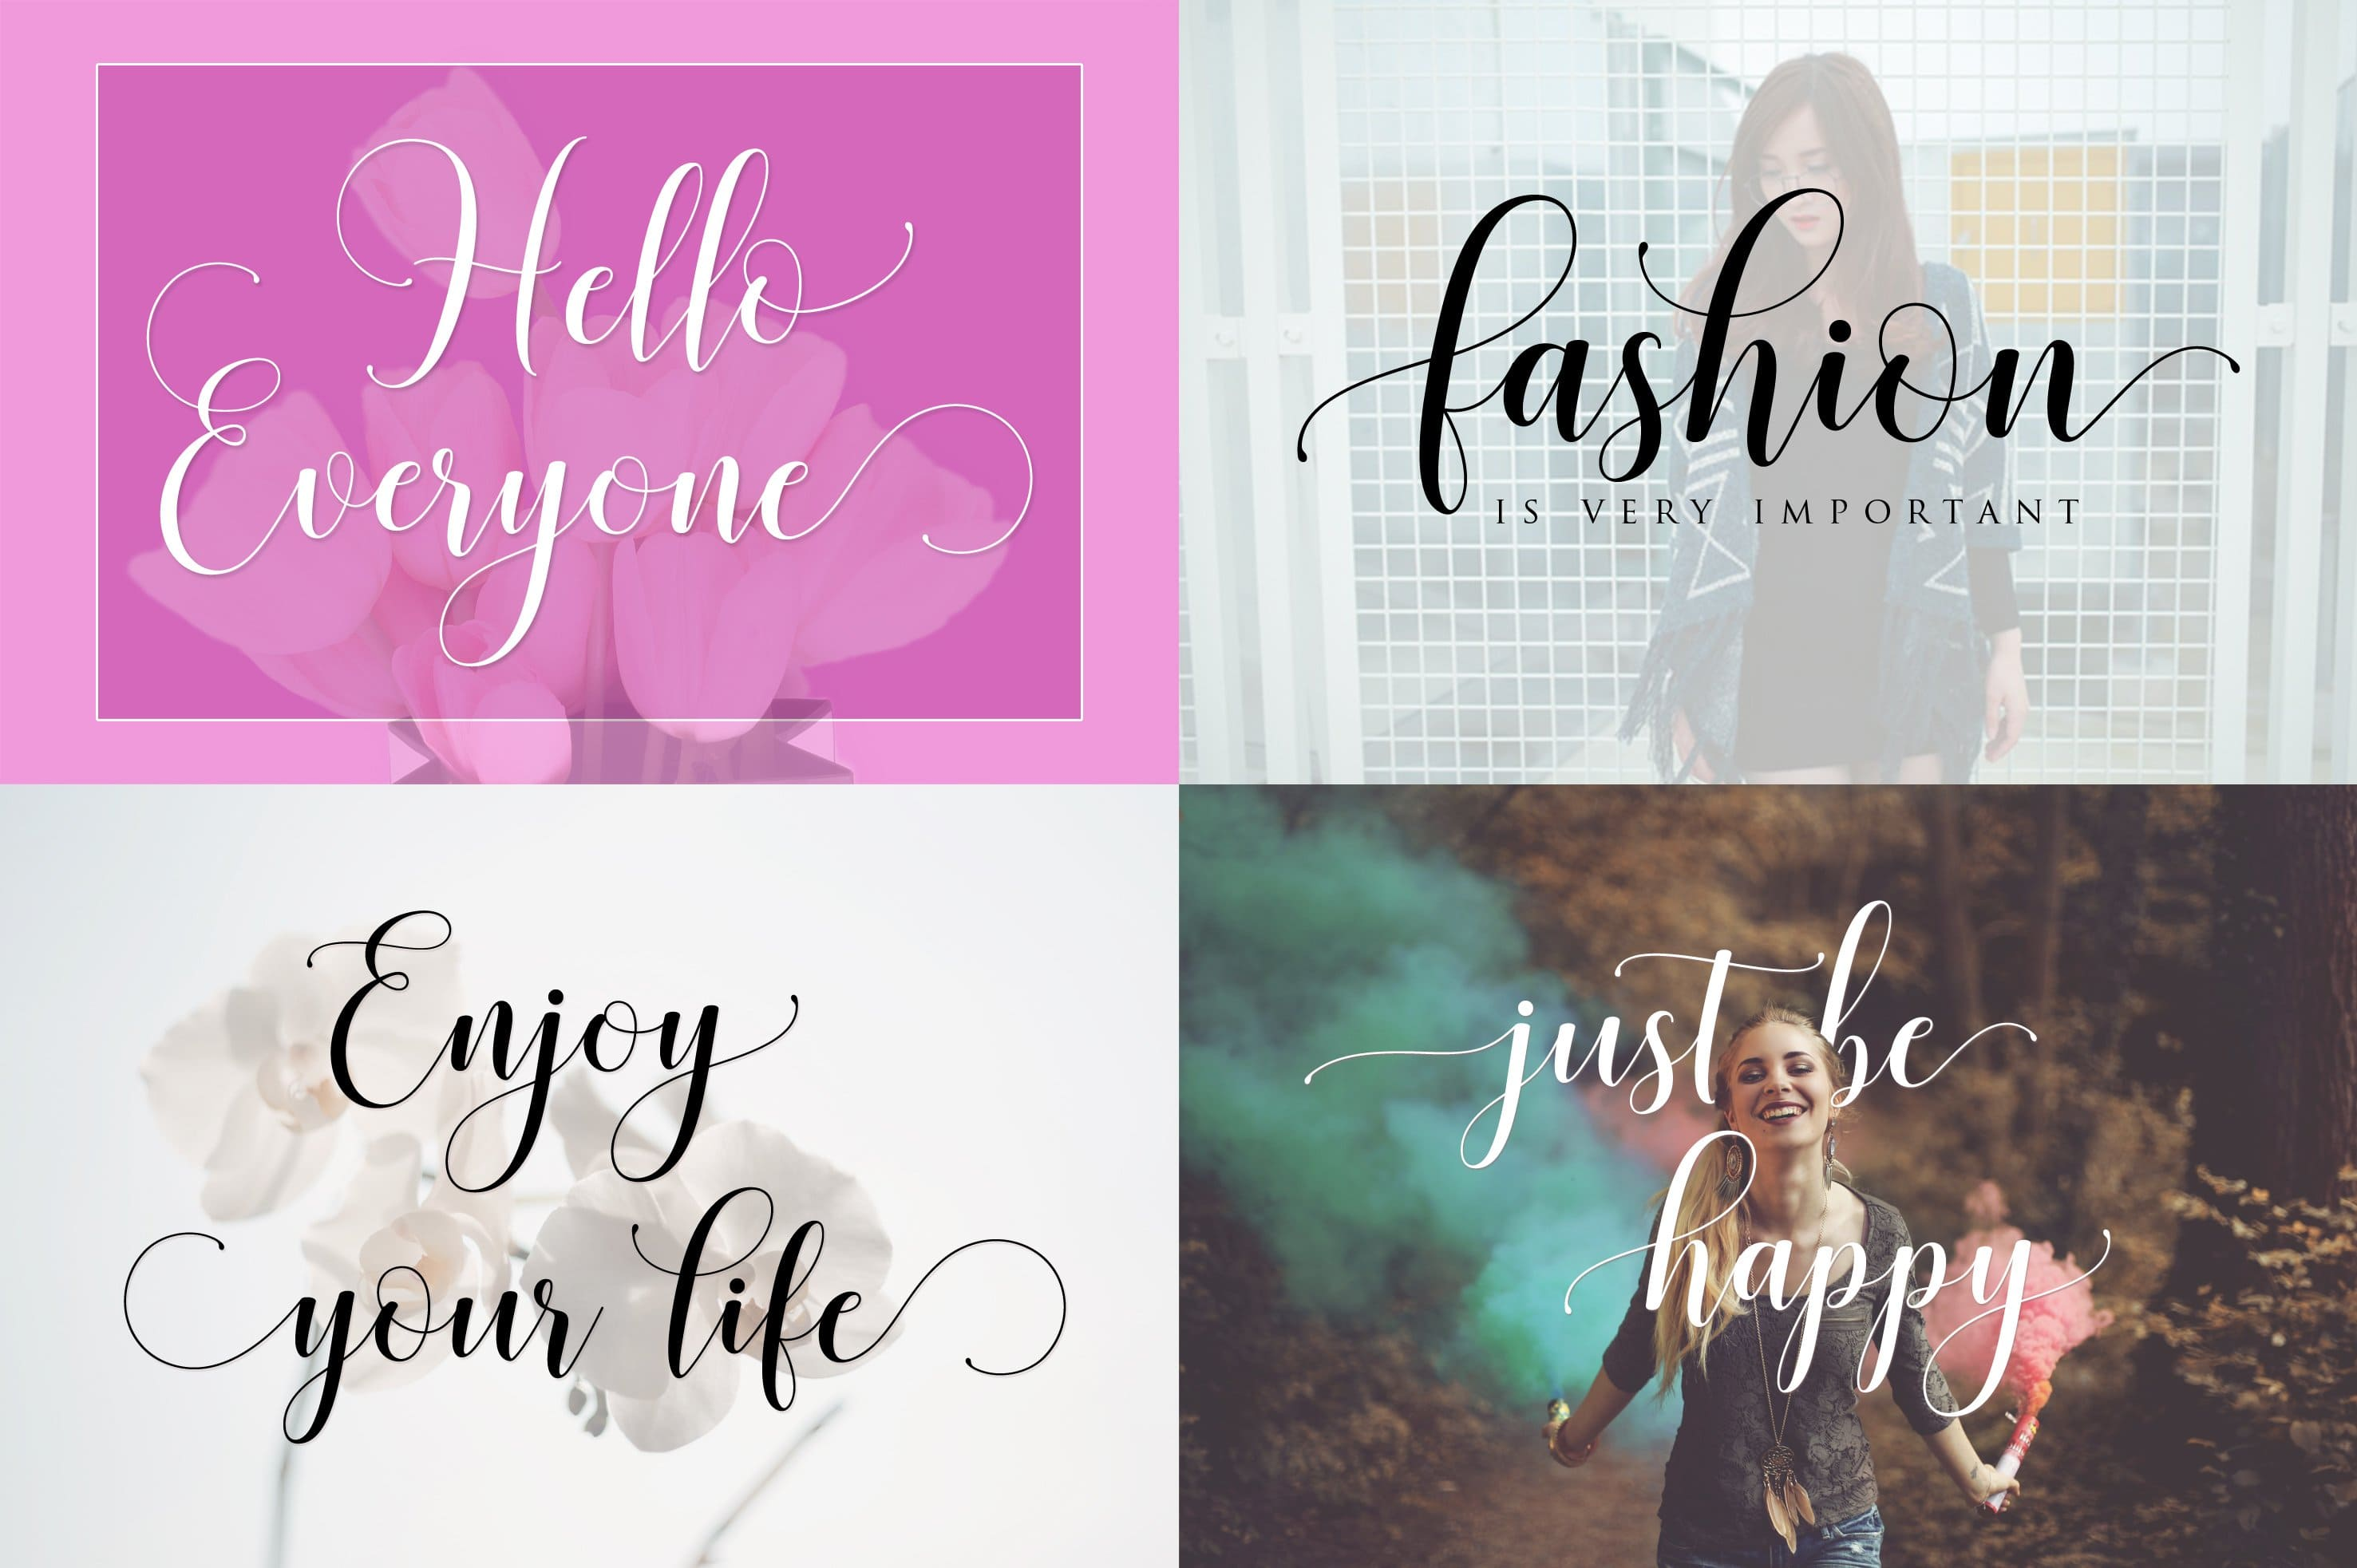 This is a versatile font. It looks good for many events.